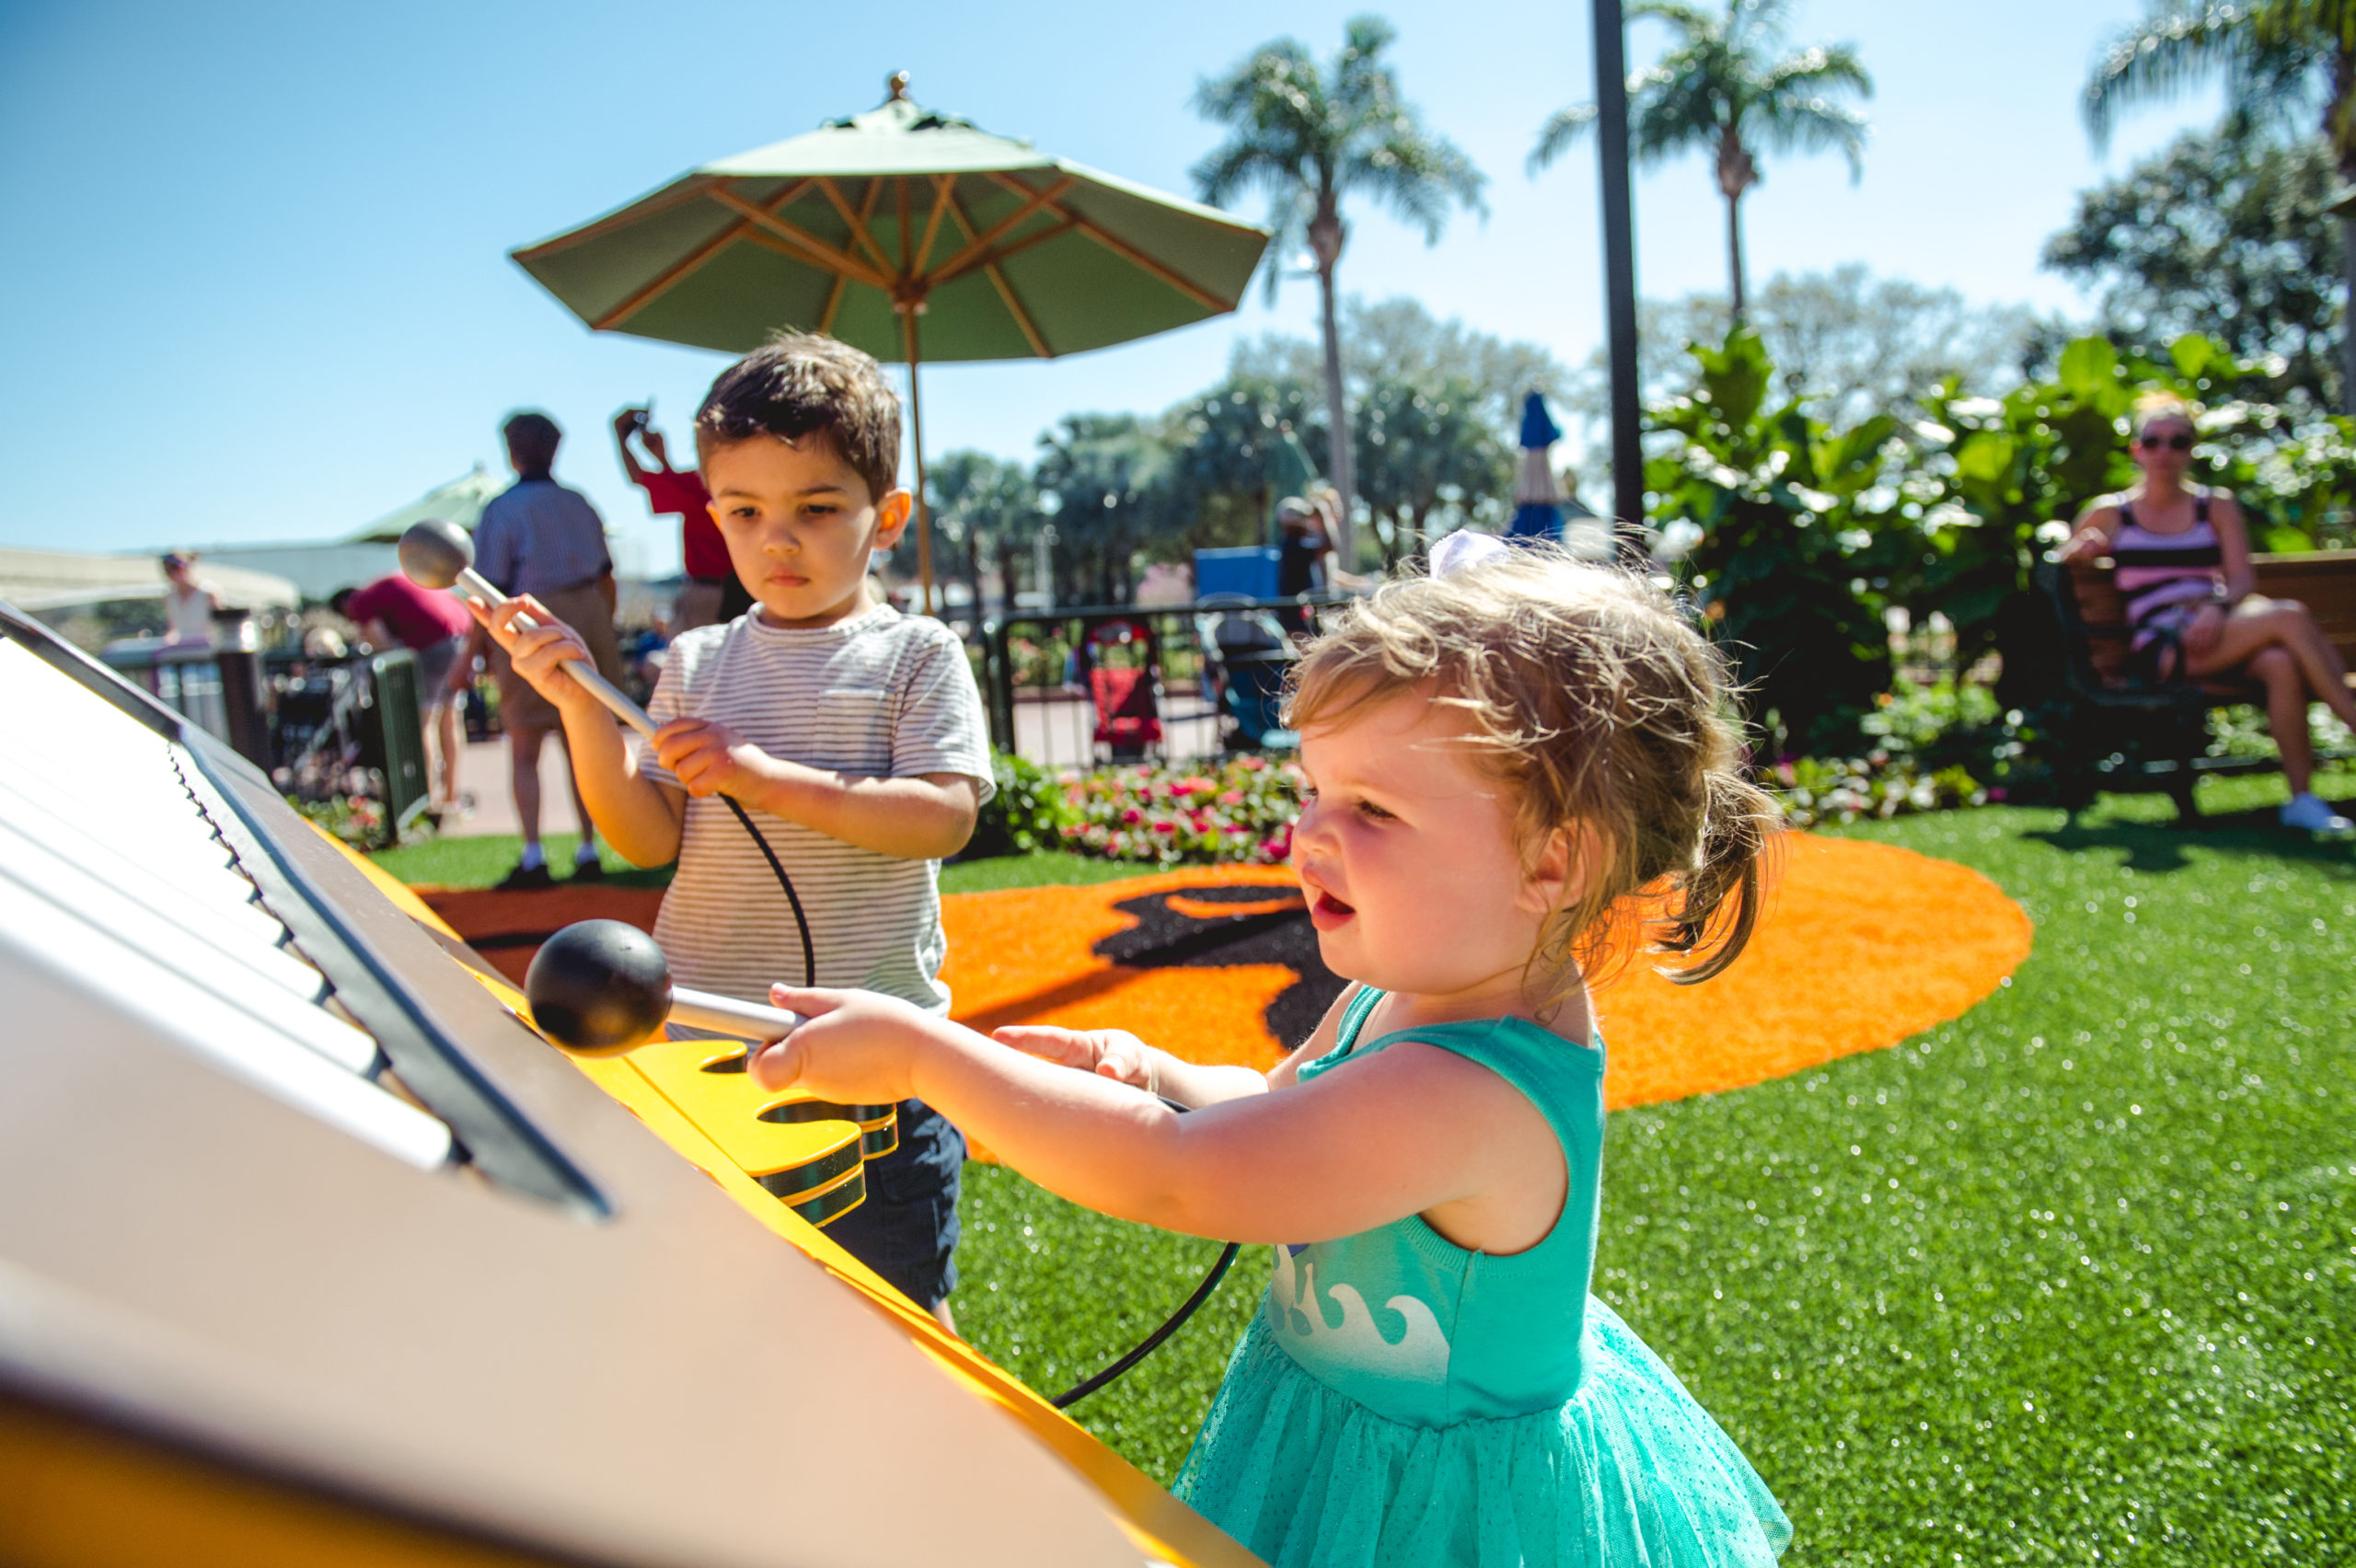 Toddlers playing instruments in Disney World